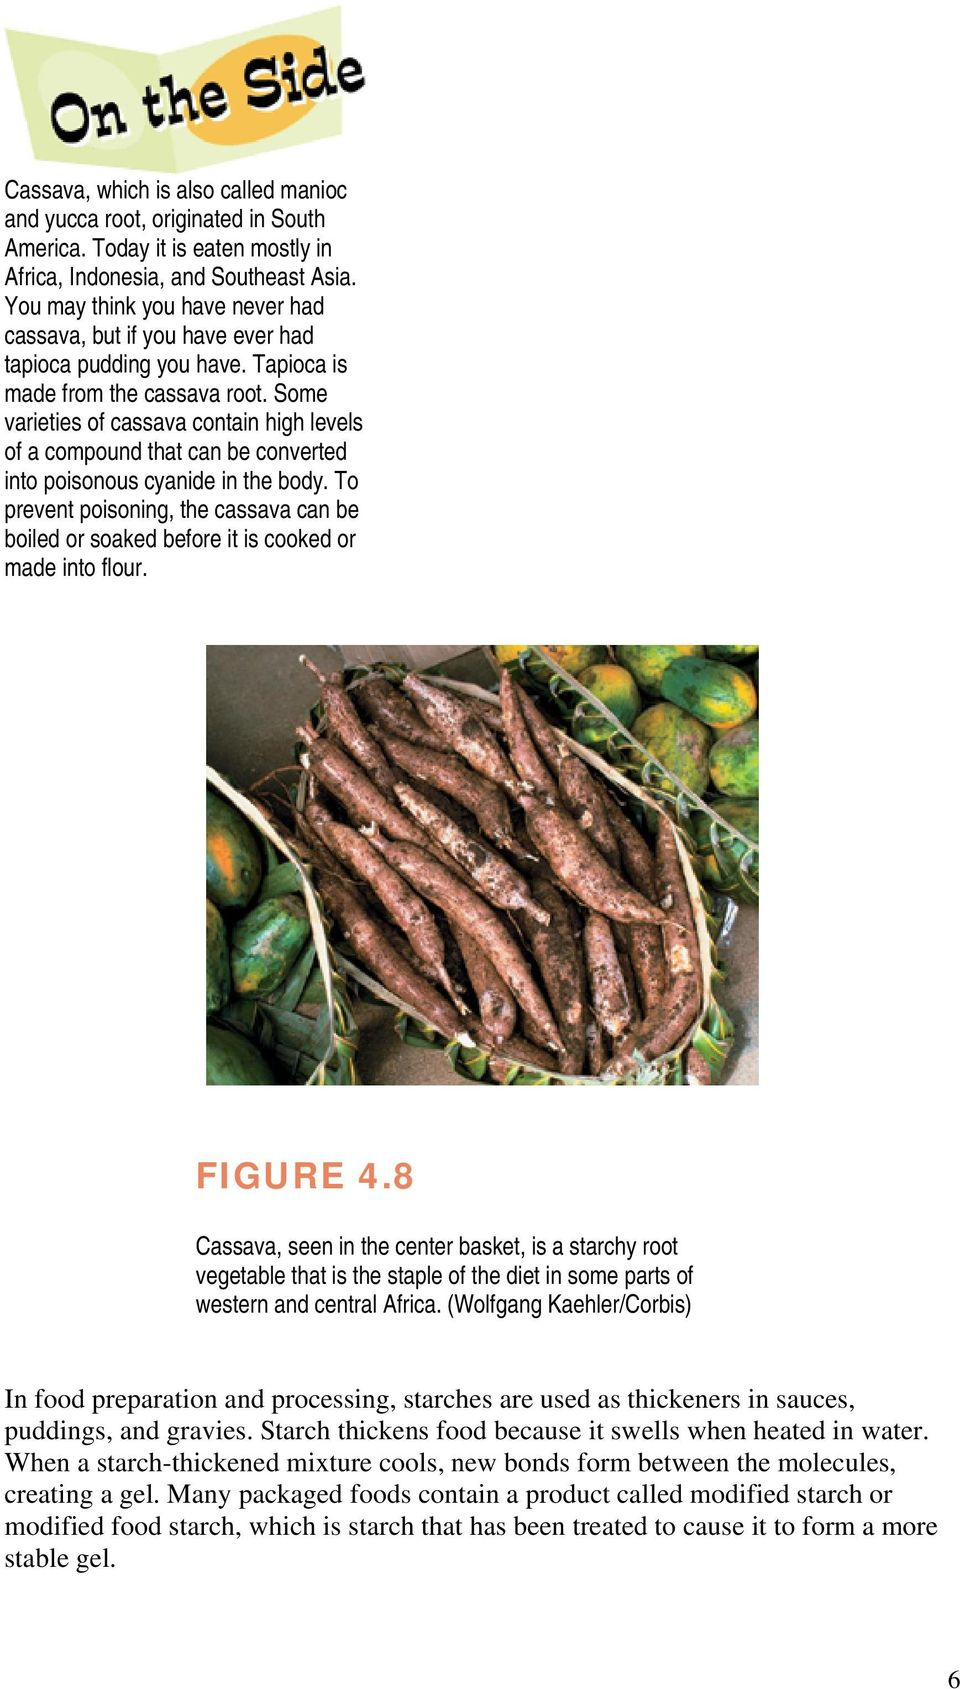 Some varieties of cassava contain high levels of a compound that can be converted into poisonous cyanide in the body.